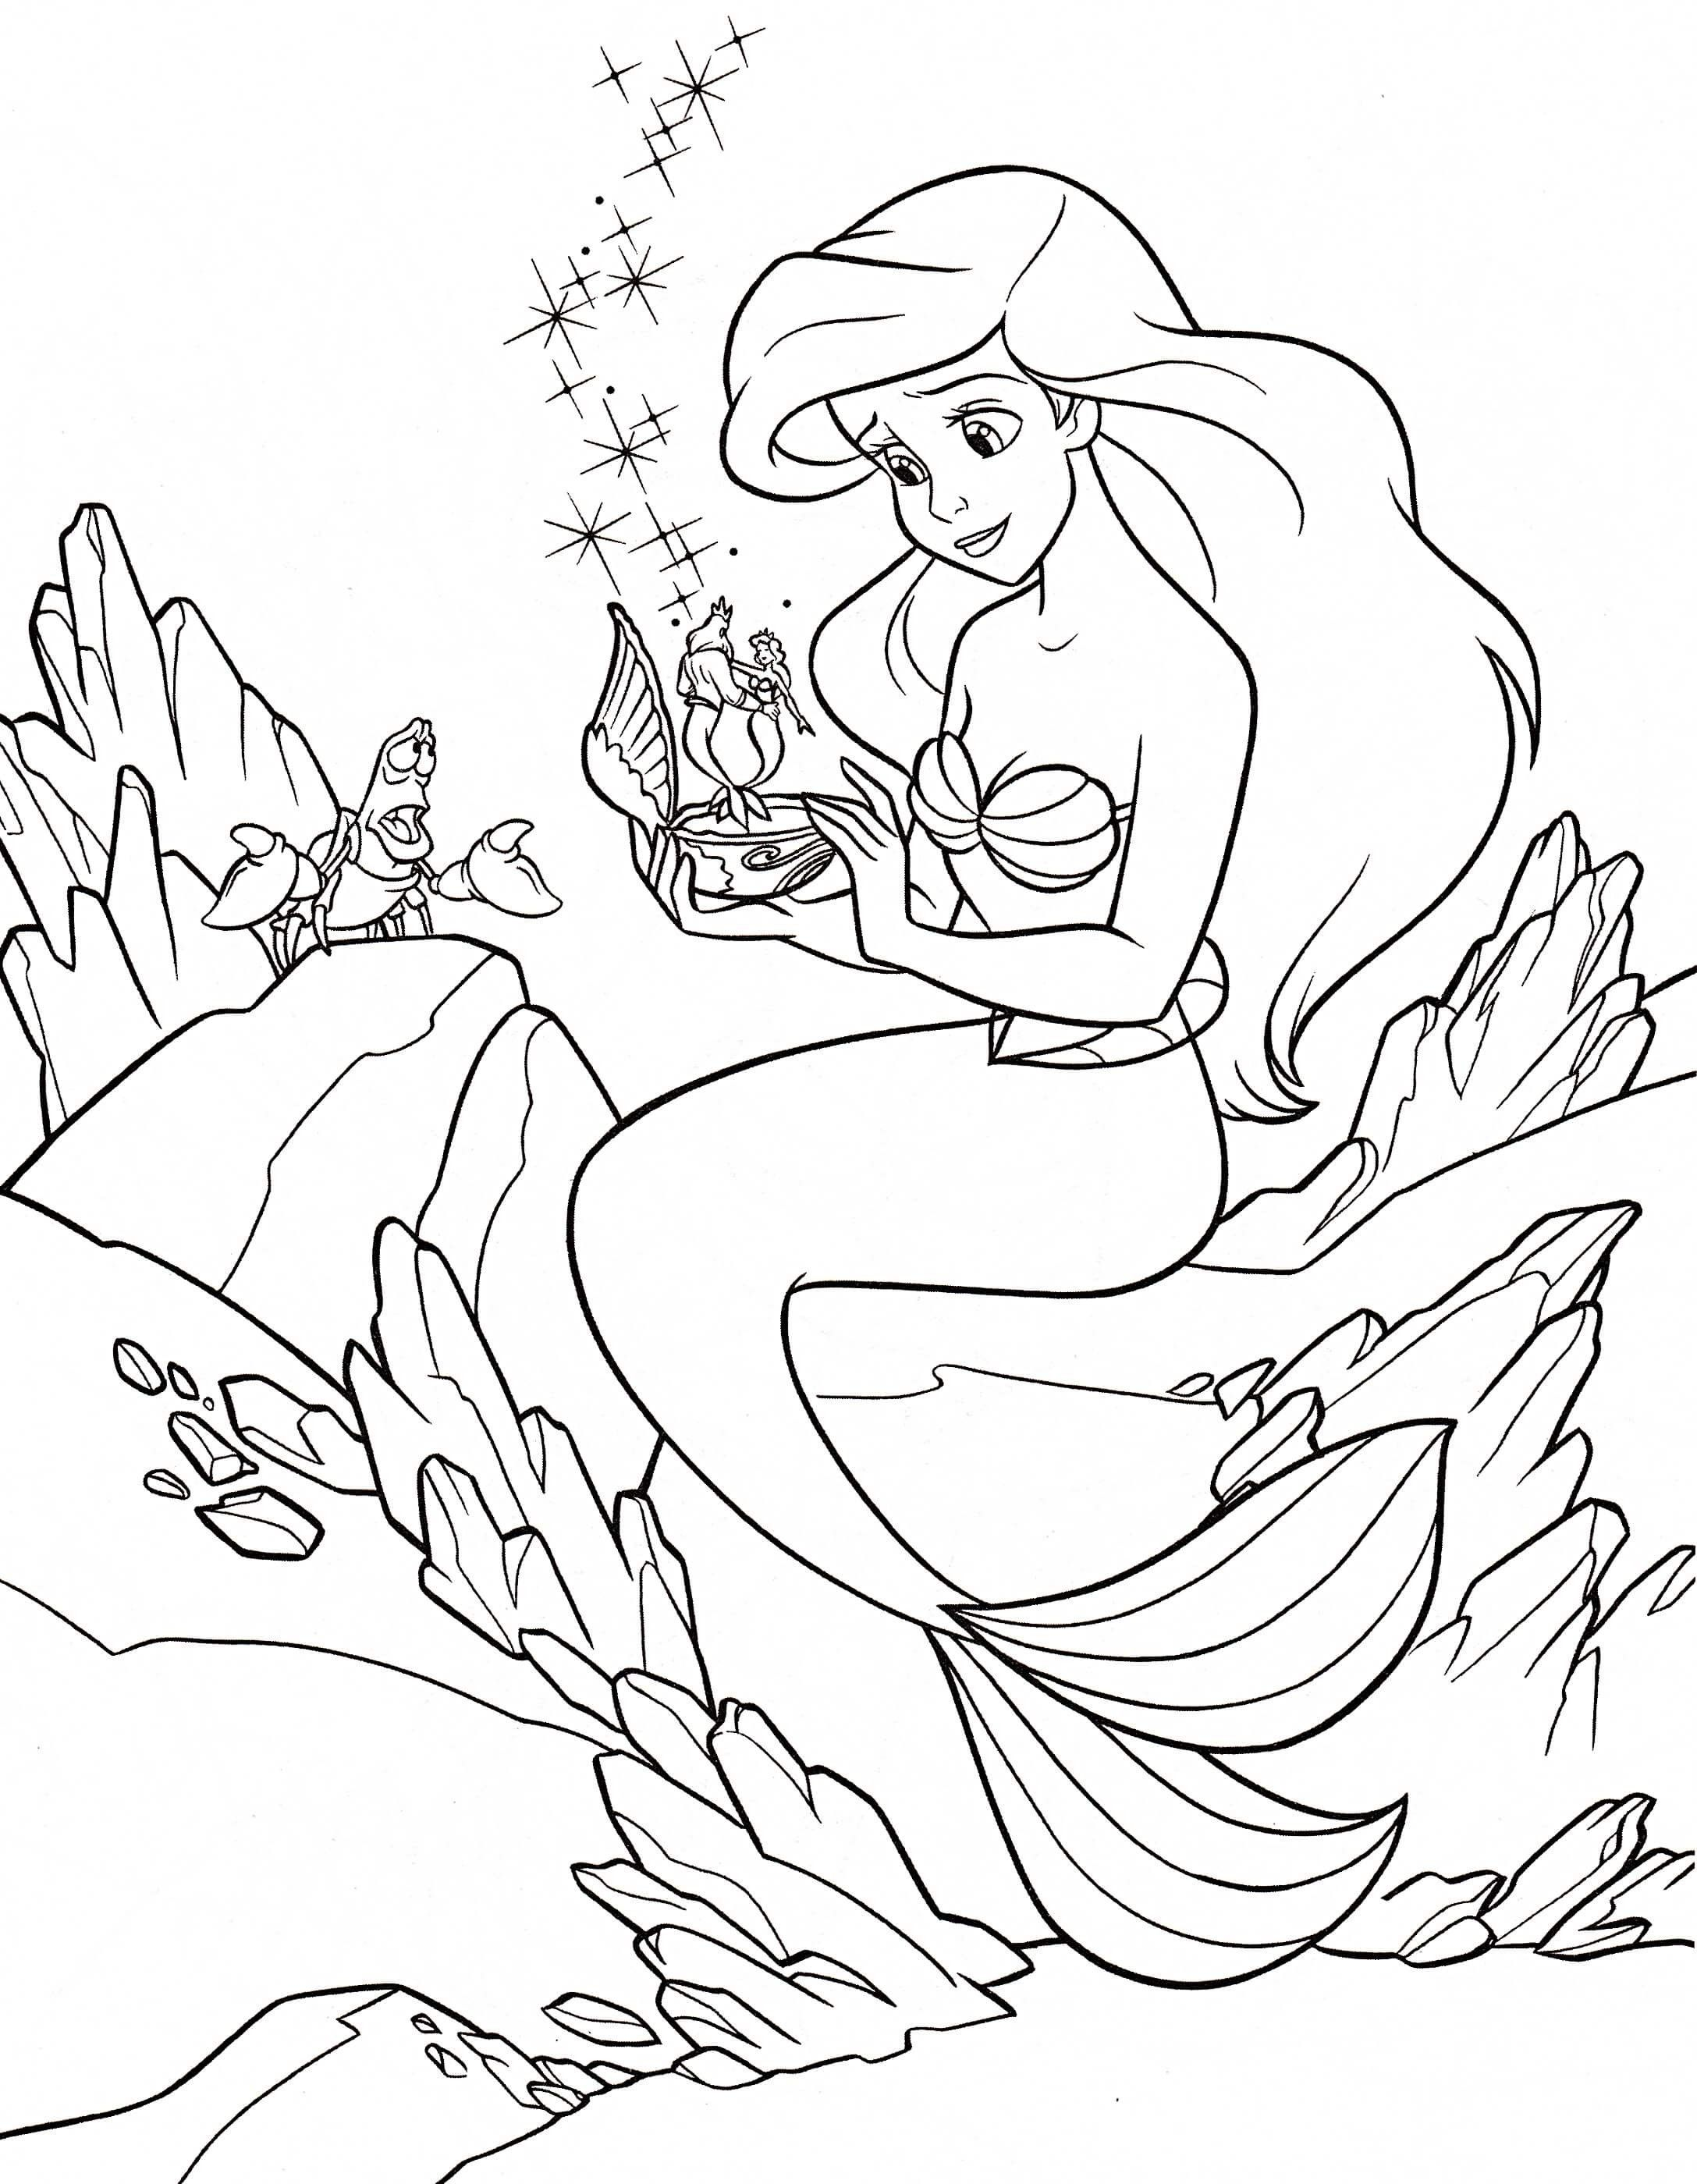 Disney Princess Coloring Pages Free Pdf From The Thousand Photos On The Web Concerning Di Ariel Coloring Pages Mermaid Coloring Pages Princess Coloring Pages